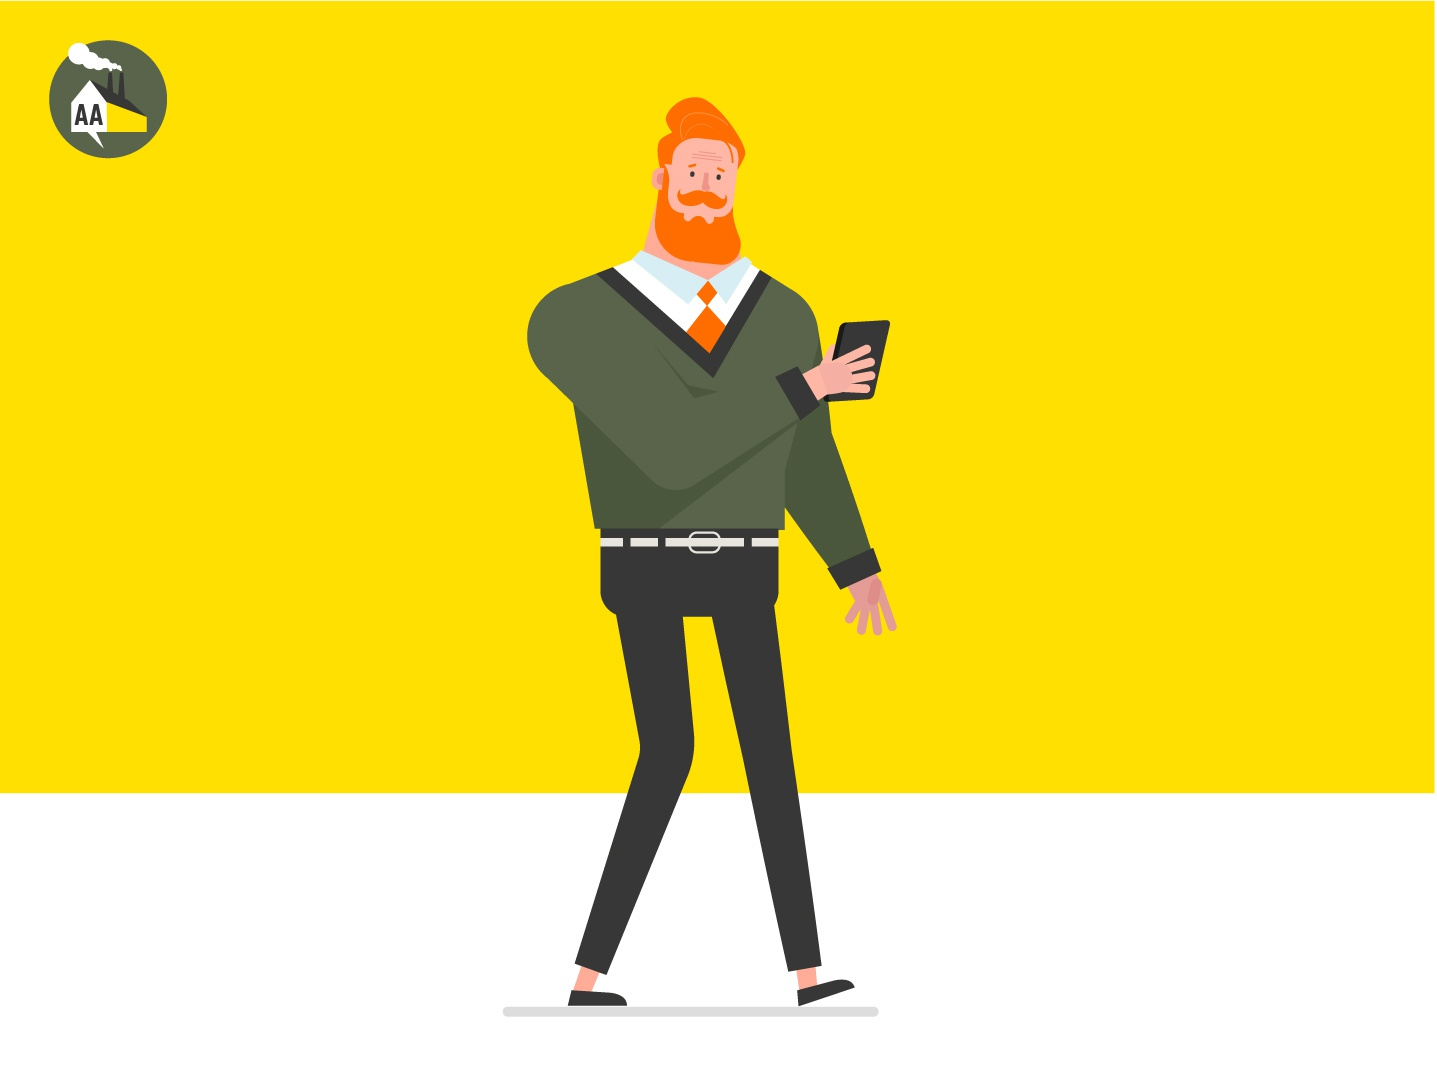 Character design for after effects character animation iphone mobile redhead hipster boy illustration flat design flat branding typography icon logo animation graphic character character vector design character design